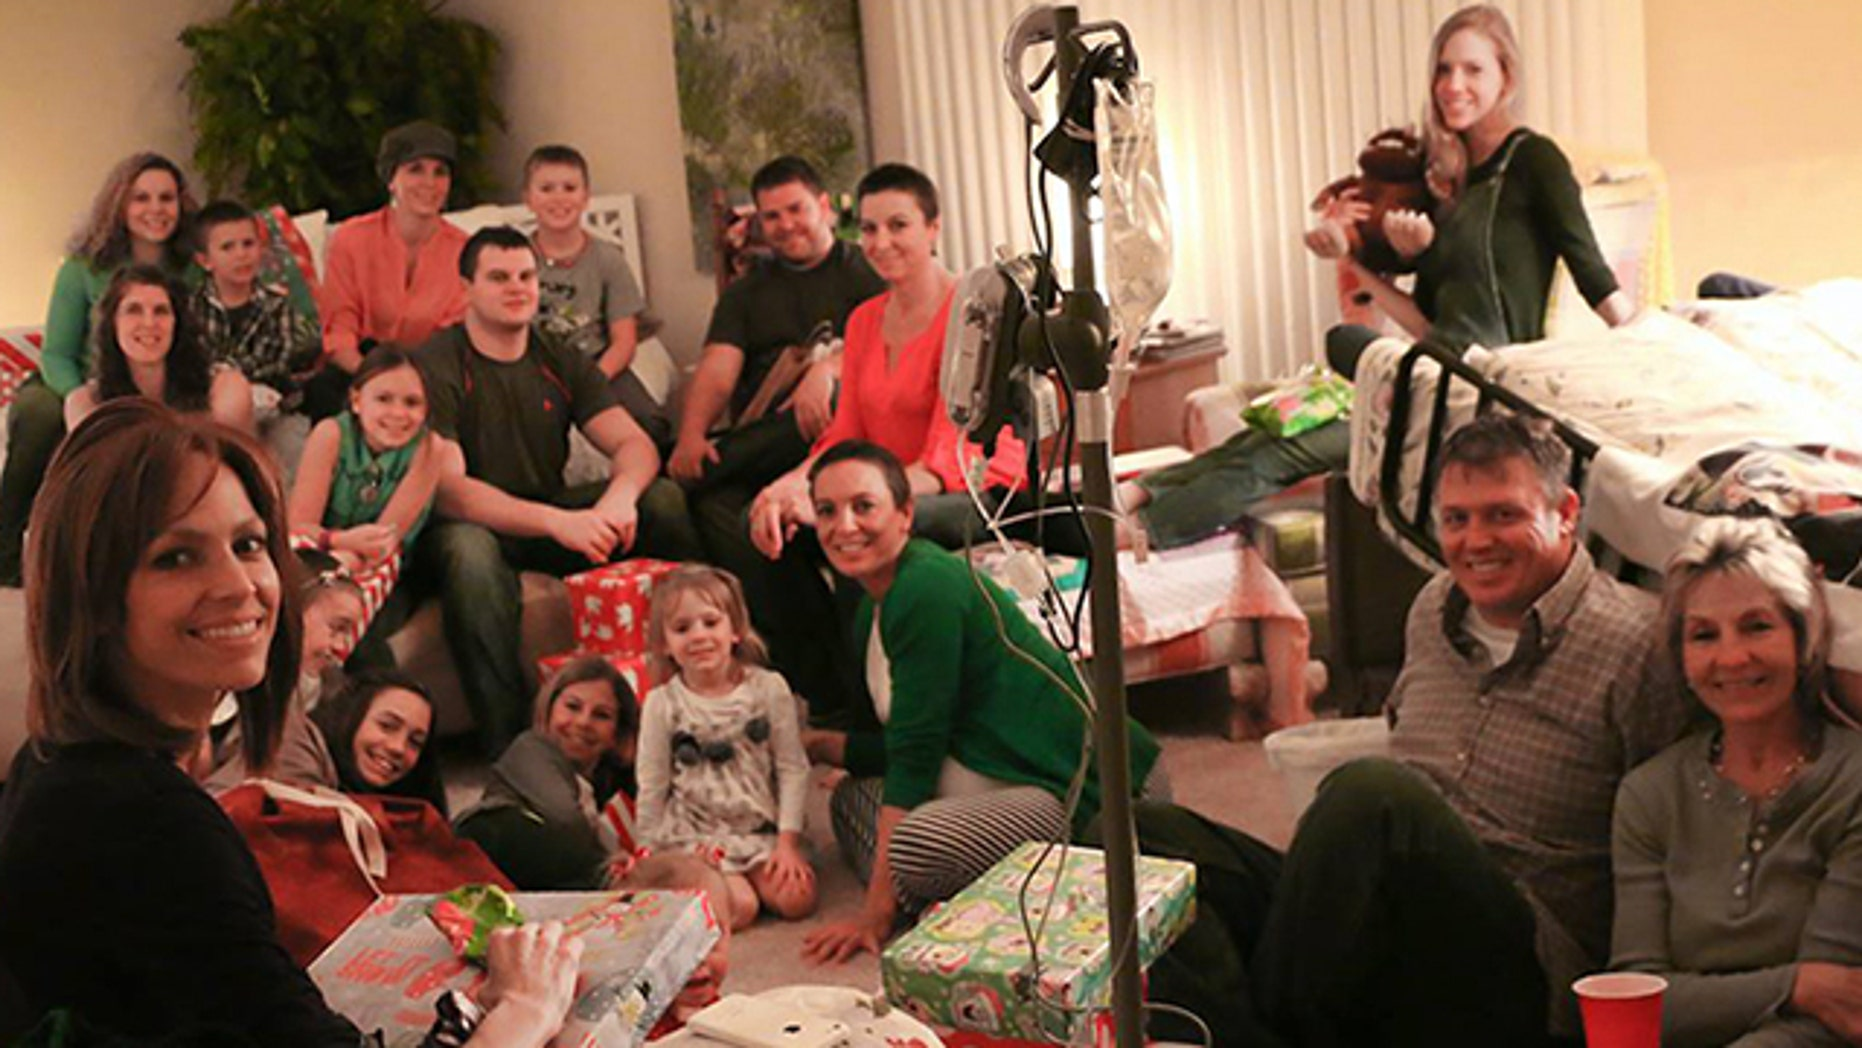 December 25, 2015. Joey Feeks surrounded by family on Christmas.